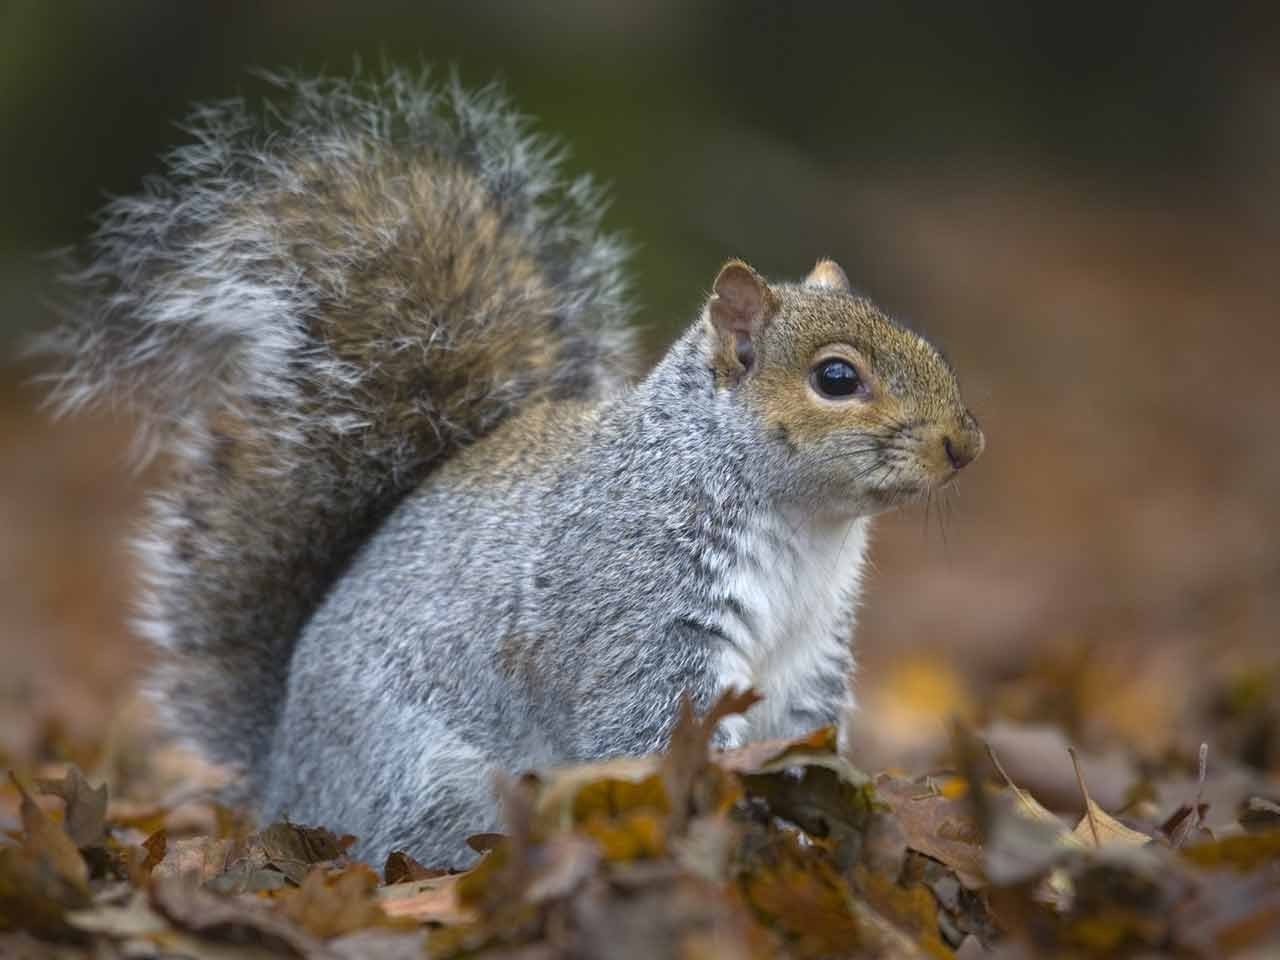 foamy the squirrel dating advice Neurotically yours dating advice posted on 26112017 26112017 by bragami but we doctors have formulated the secret dosage which gives an erection for a time period suitable to the patient.